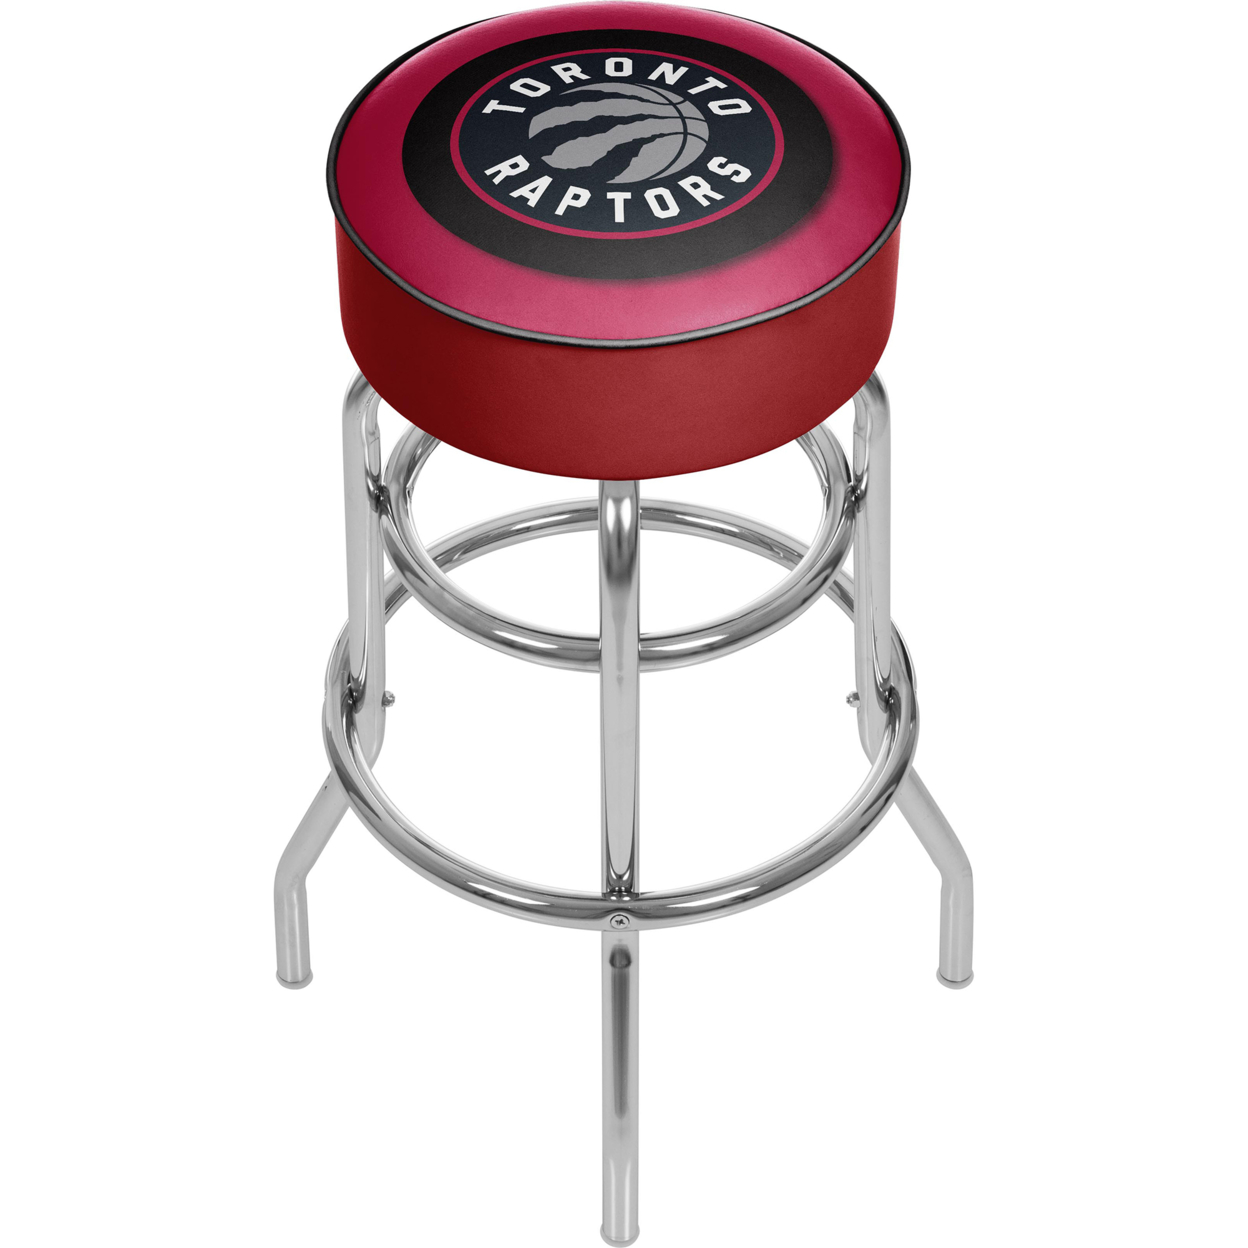 Toronto Raptors NBA Padded Swivel Bar Stool 30 Inches High фанатская атрибутика nike curry nba